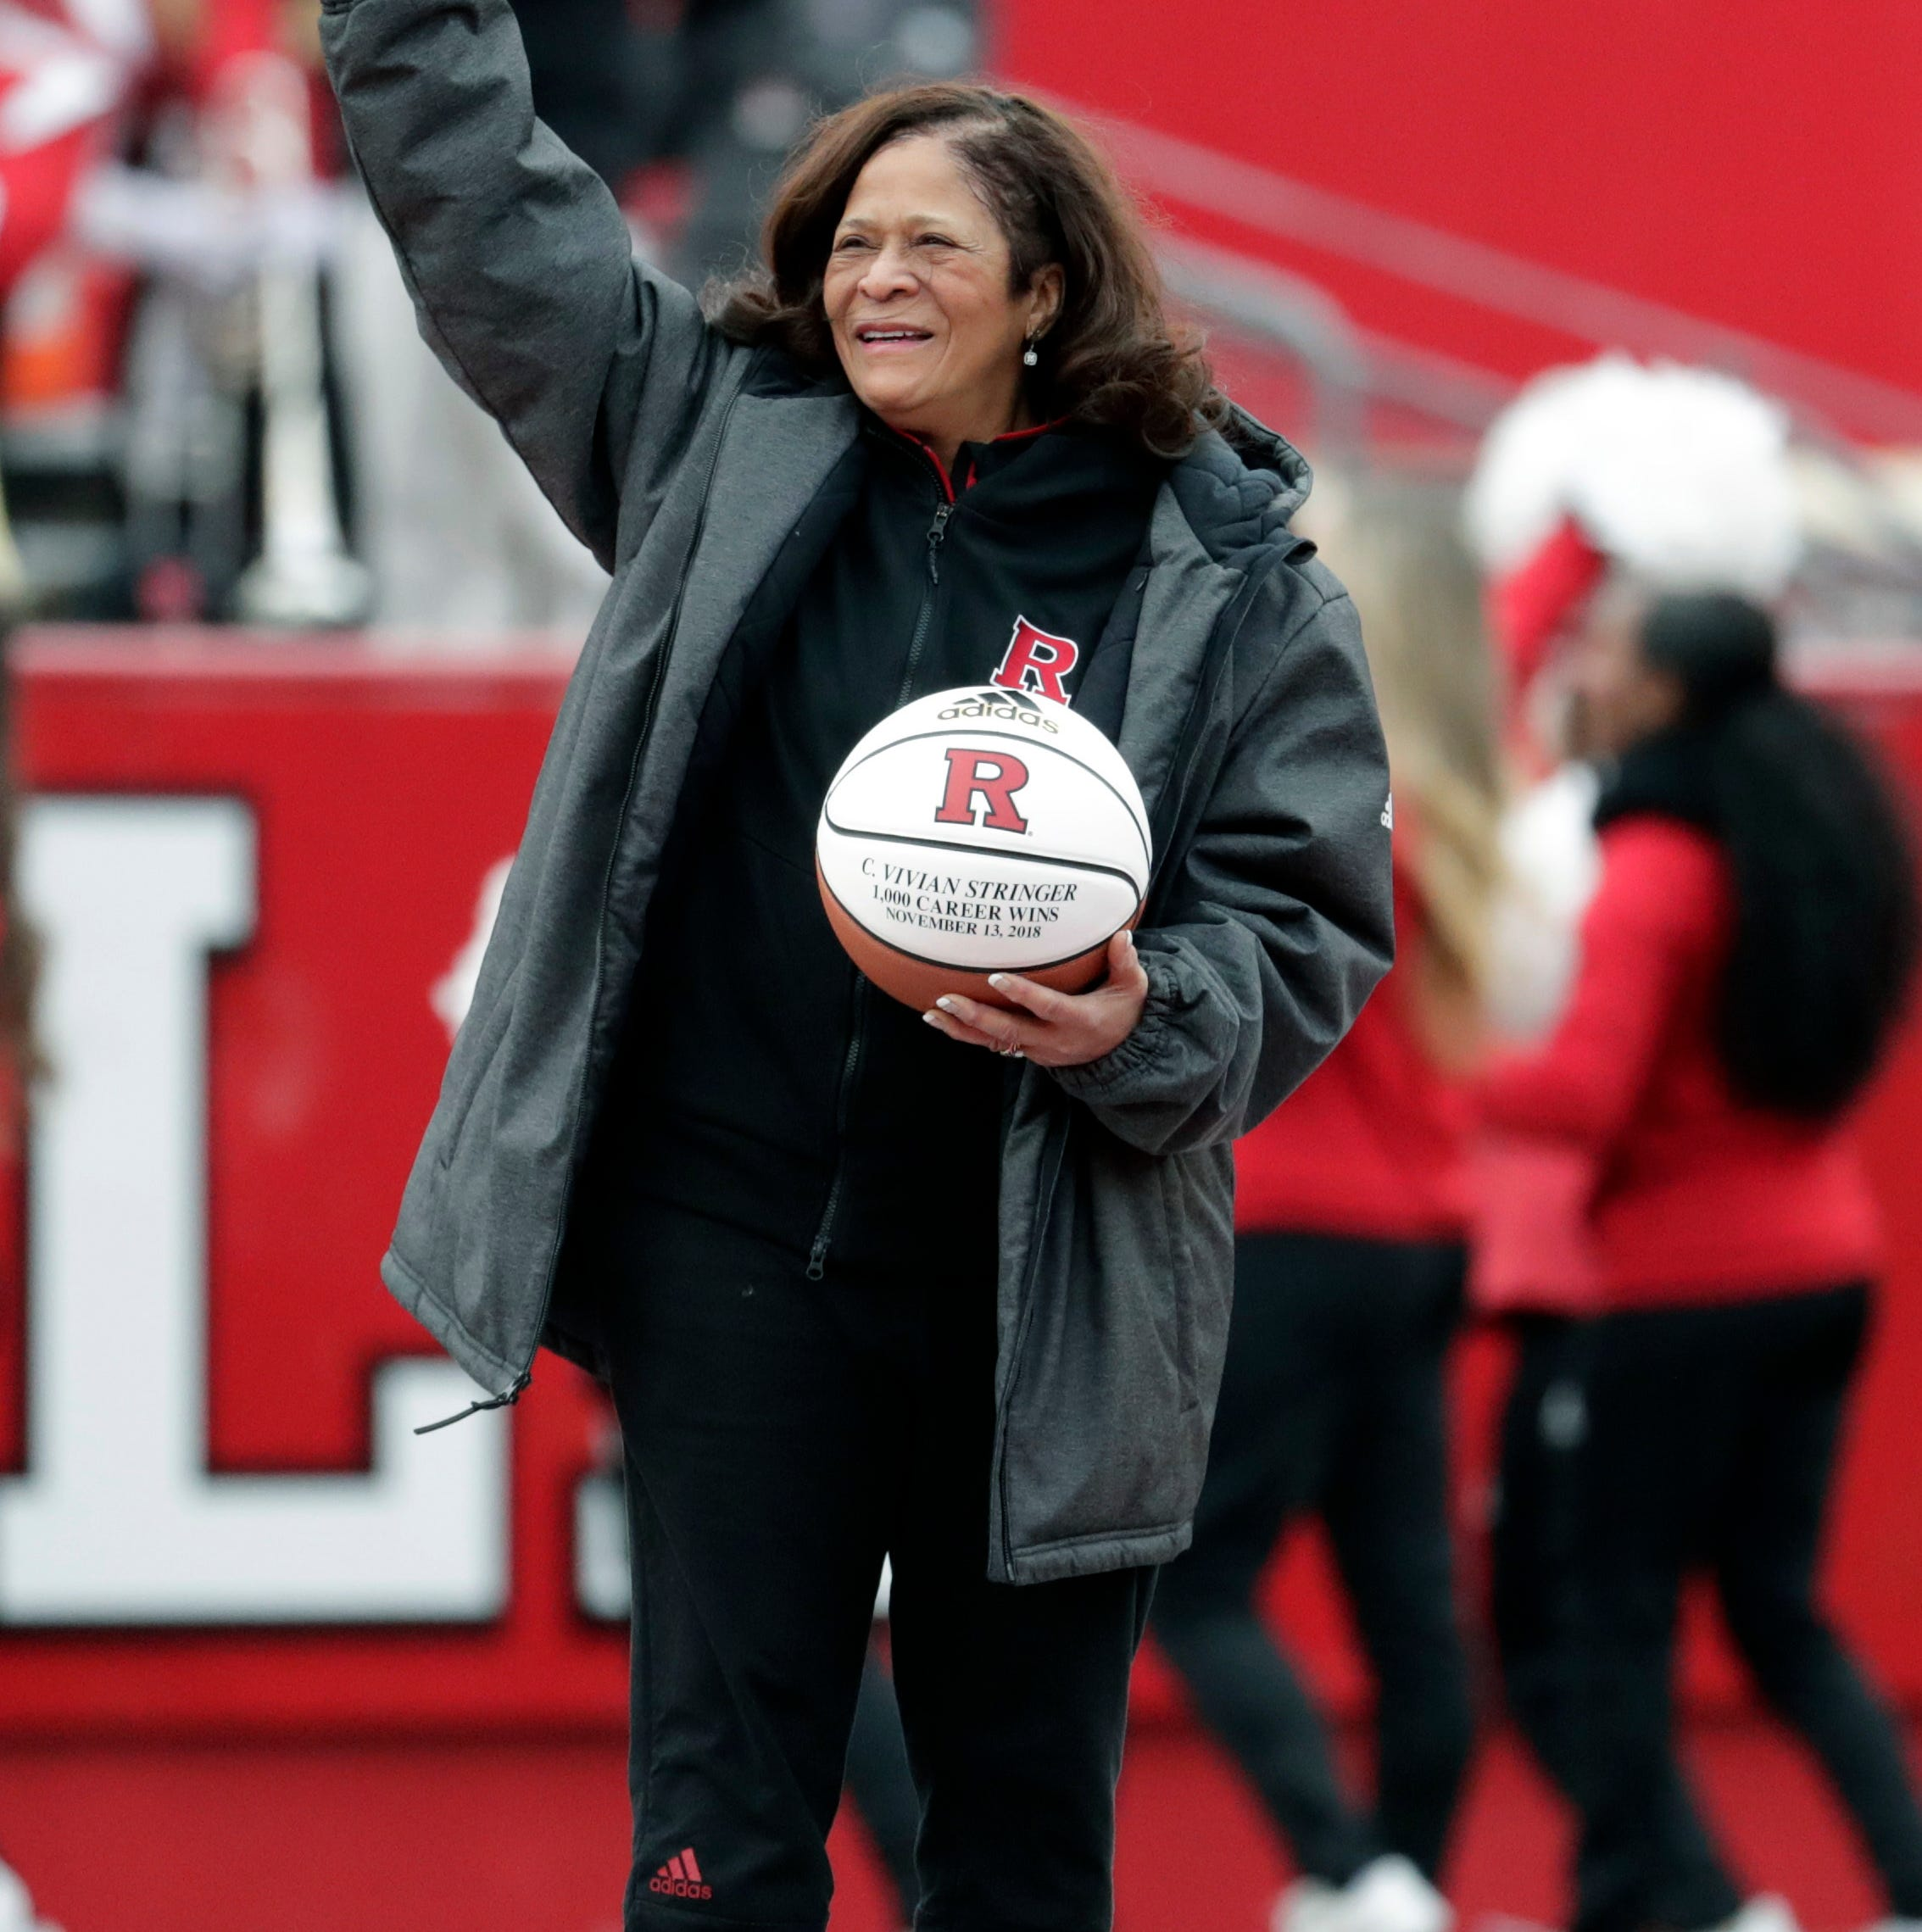 NCAA Women's Tournament 2019: Is C. Vivian Stringer eligible for Rutgers bonuses?